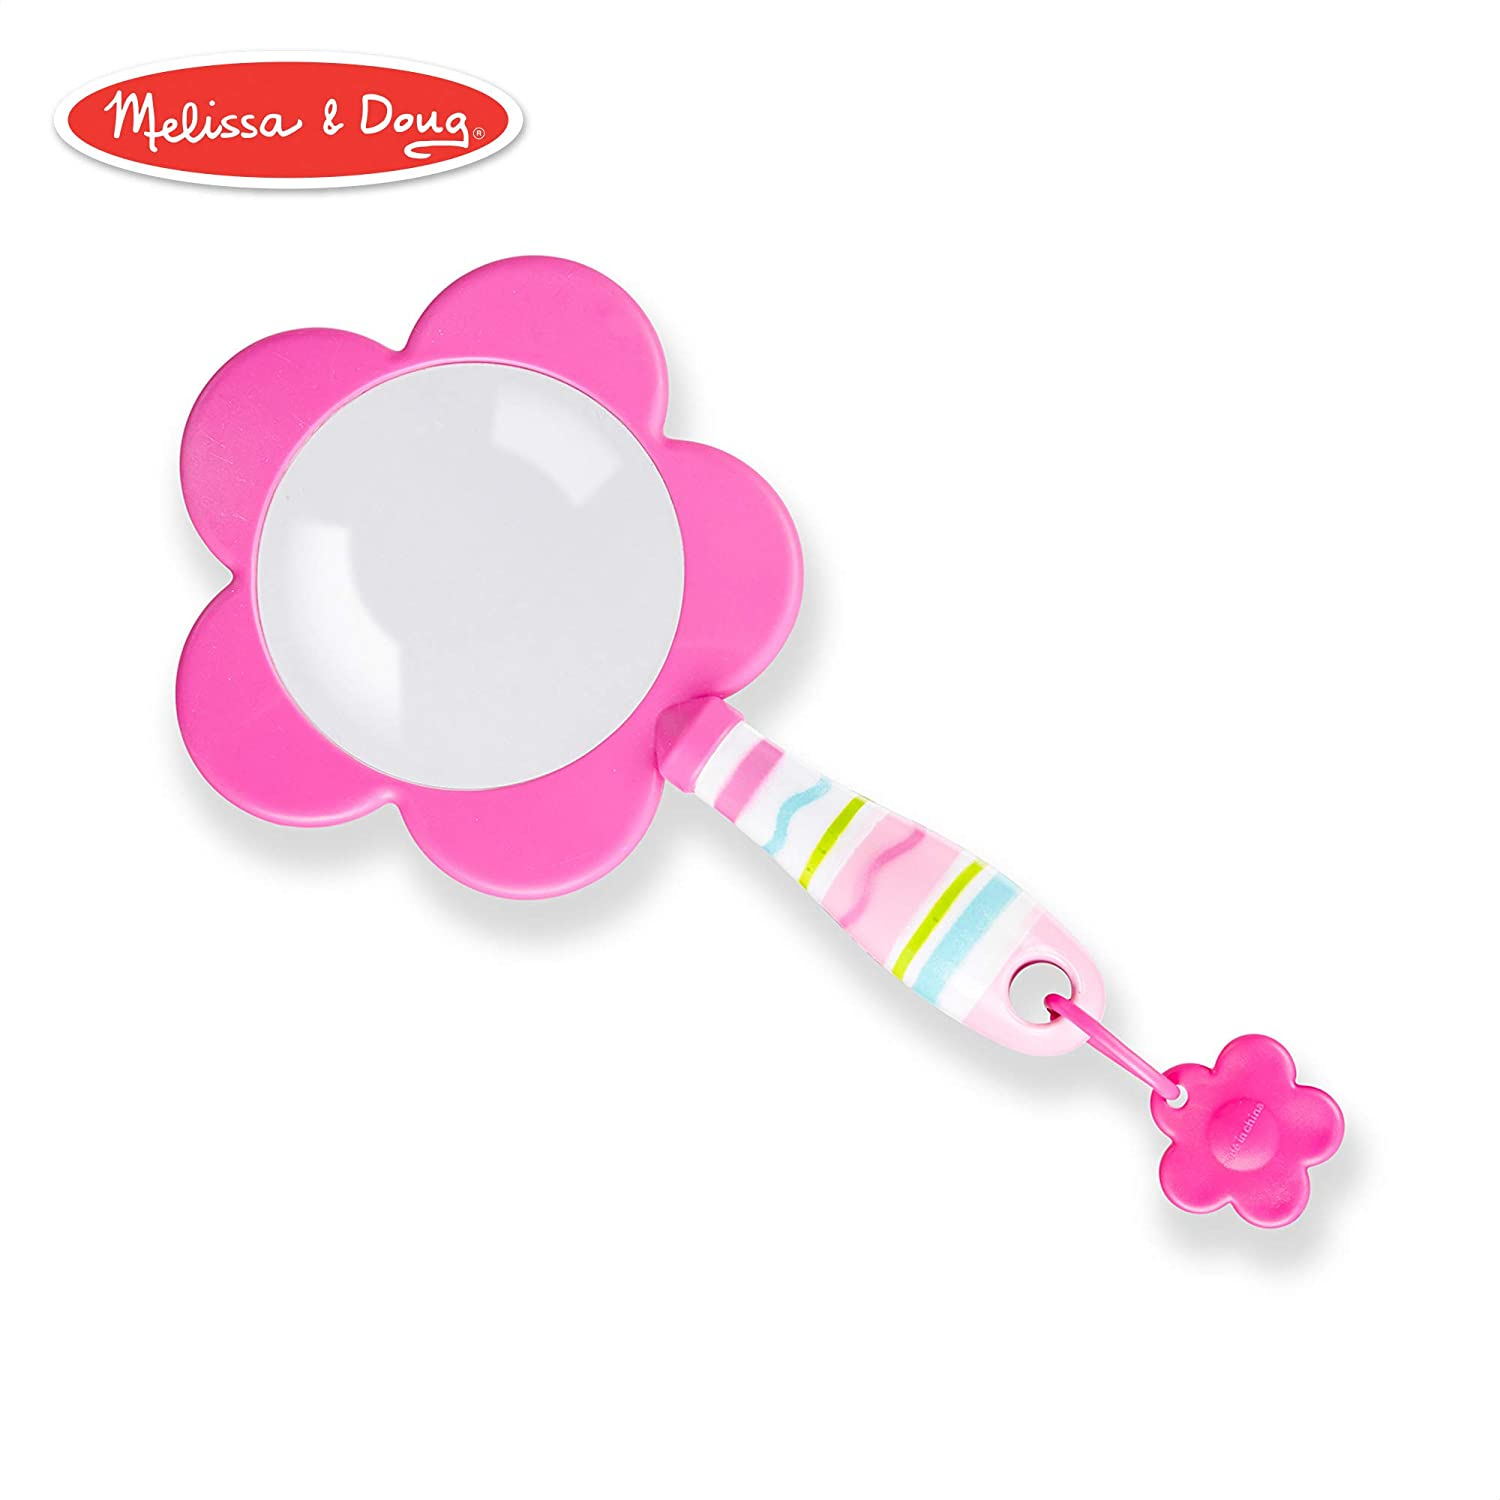 Top 9 Best Kids Magnifying Glass Reviews in 2020 5